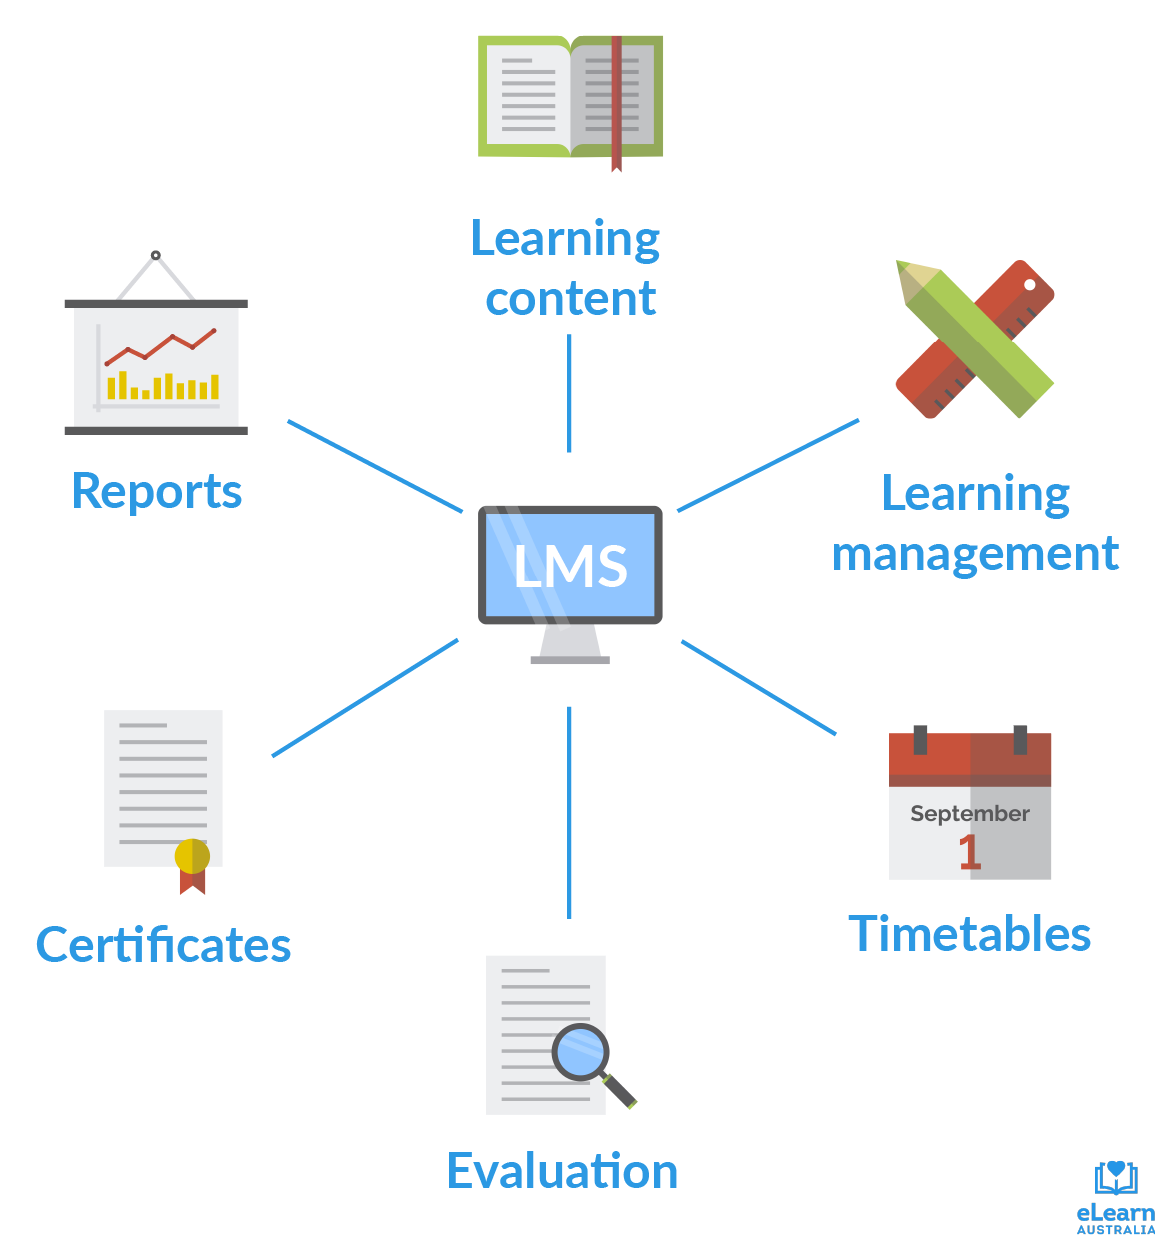 LMS integrates learning content, learning management, timetables, evaluation, certificates and reports.